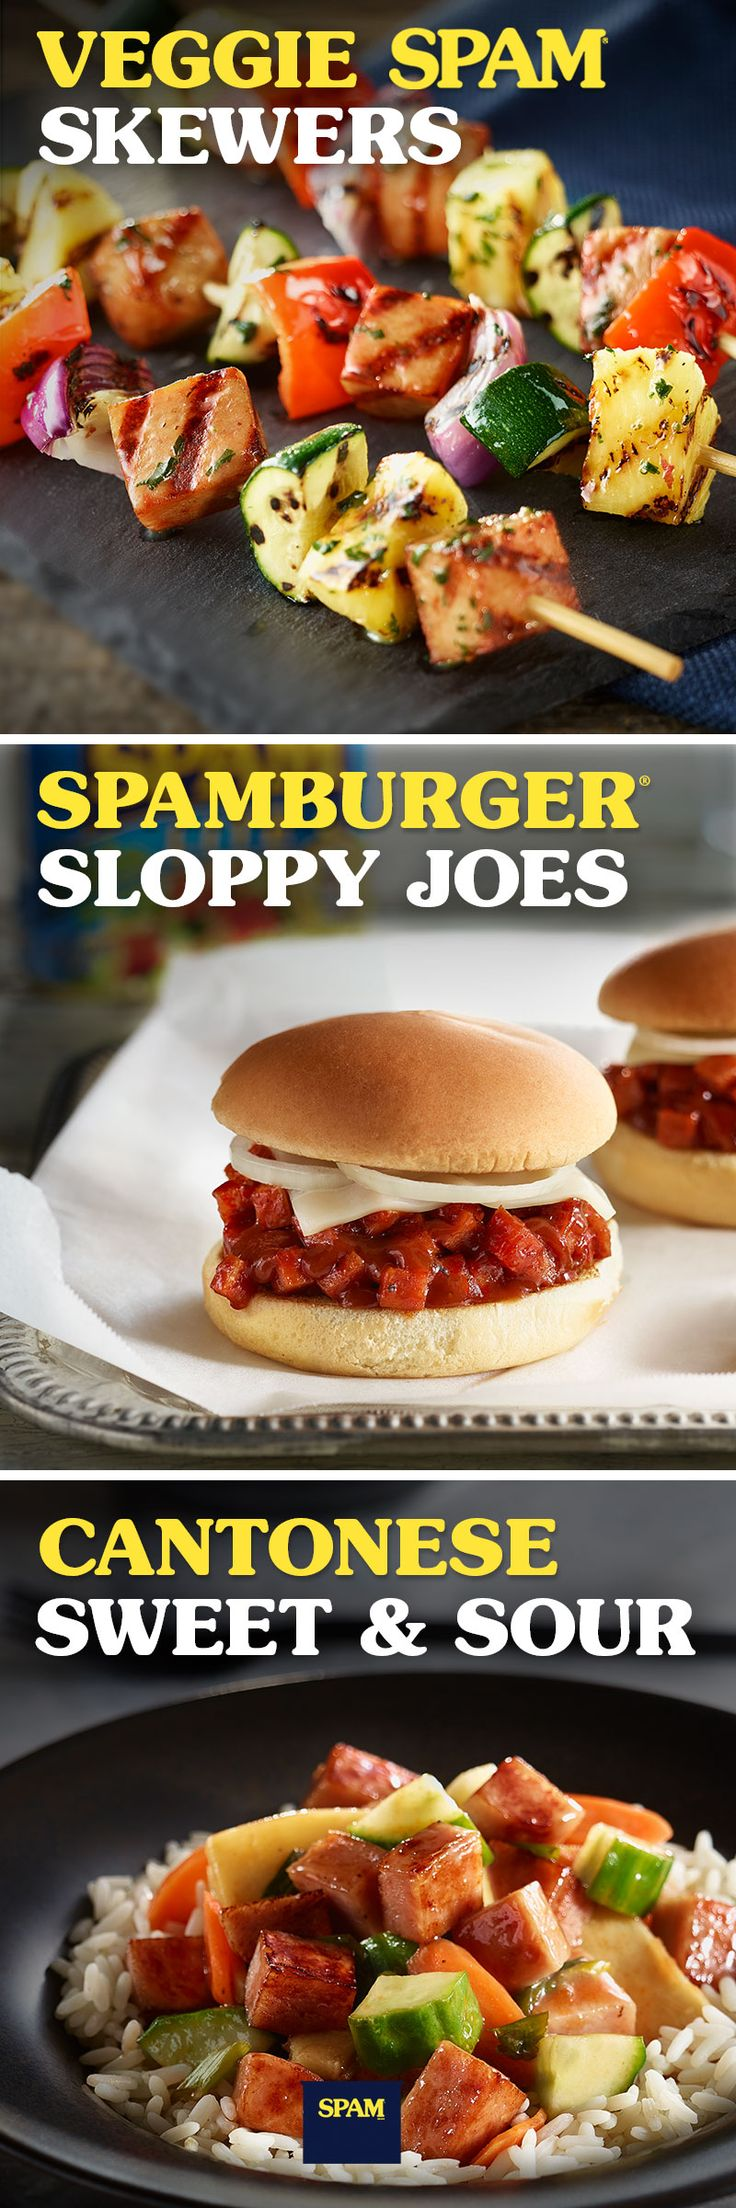 Burgers, skewers, or stir fry: try these three easy recipes that taste SPAMAZING™ for lunch or dinner.   | SPAM® Brand | SPAMBURGER™ Sloppy Joes | Veggie SPAM®Skewers | Cantonese Sweet and Sour | Asian Recipes | Cilantro | Bell Pepper | Onion | Zucchini | Barbeque | SPAM® Classic | SPAM® Lite | SPAM® Jalapeño